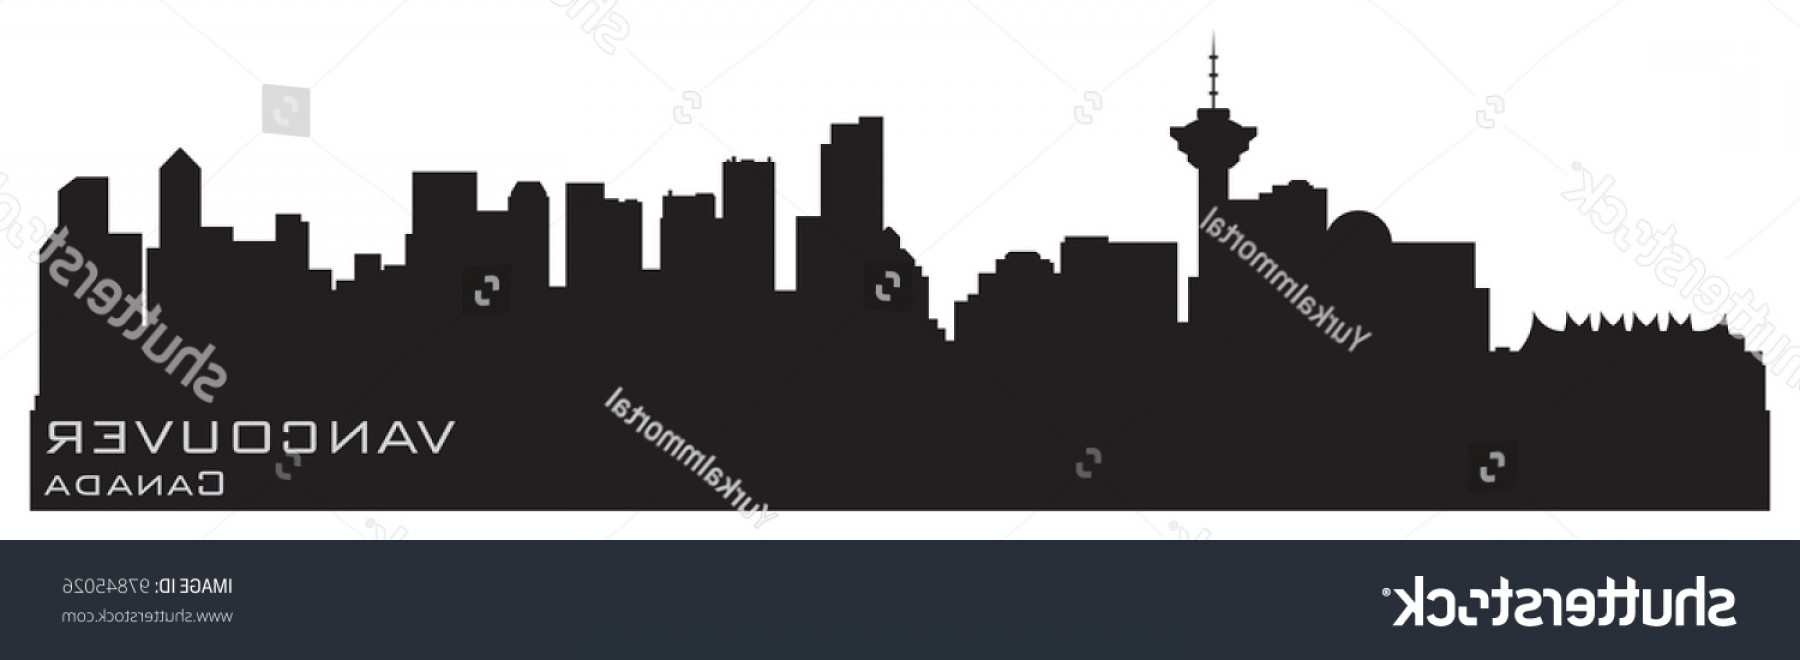 Vancouver Skyline Vector: Vancouver Canada Skyline Detailed Vector Silhouette